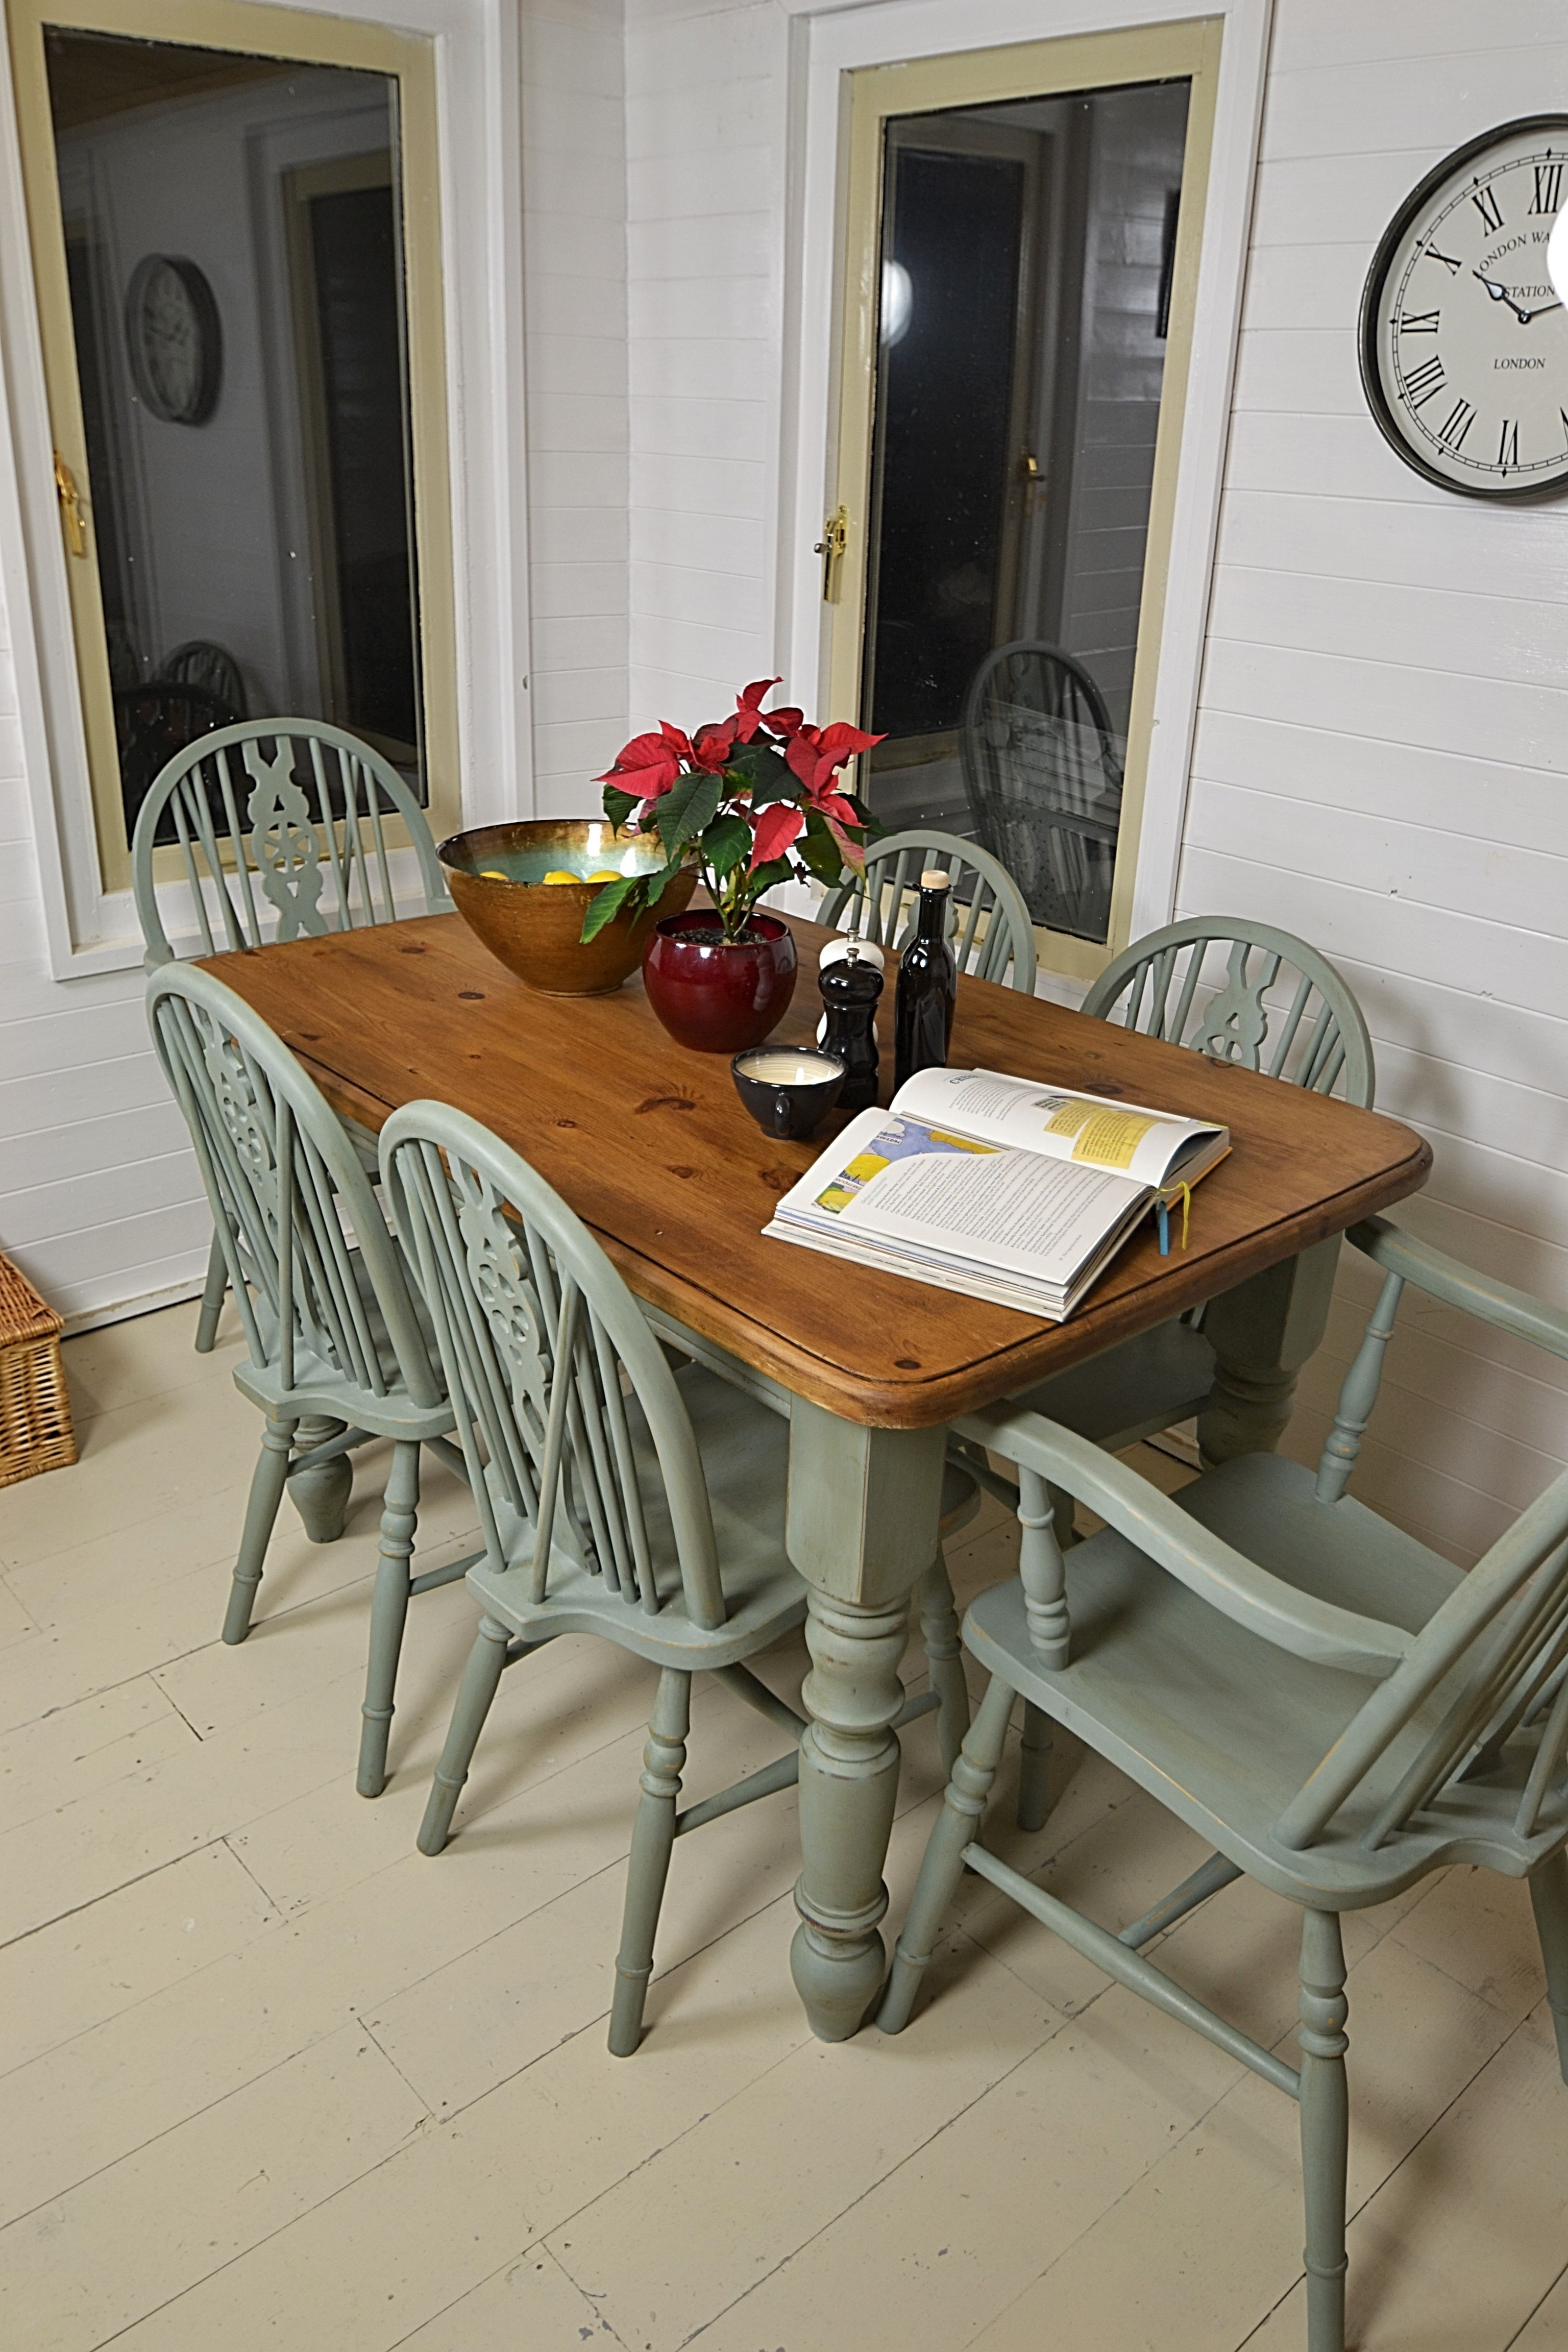 Dine in style with this farmhouse dining set